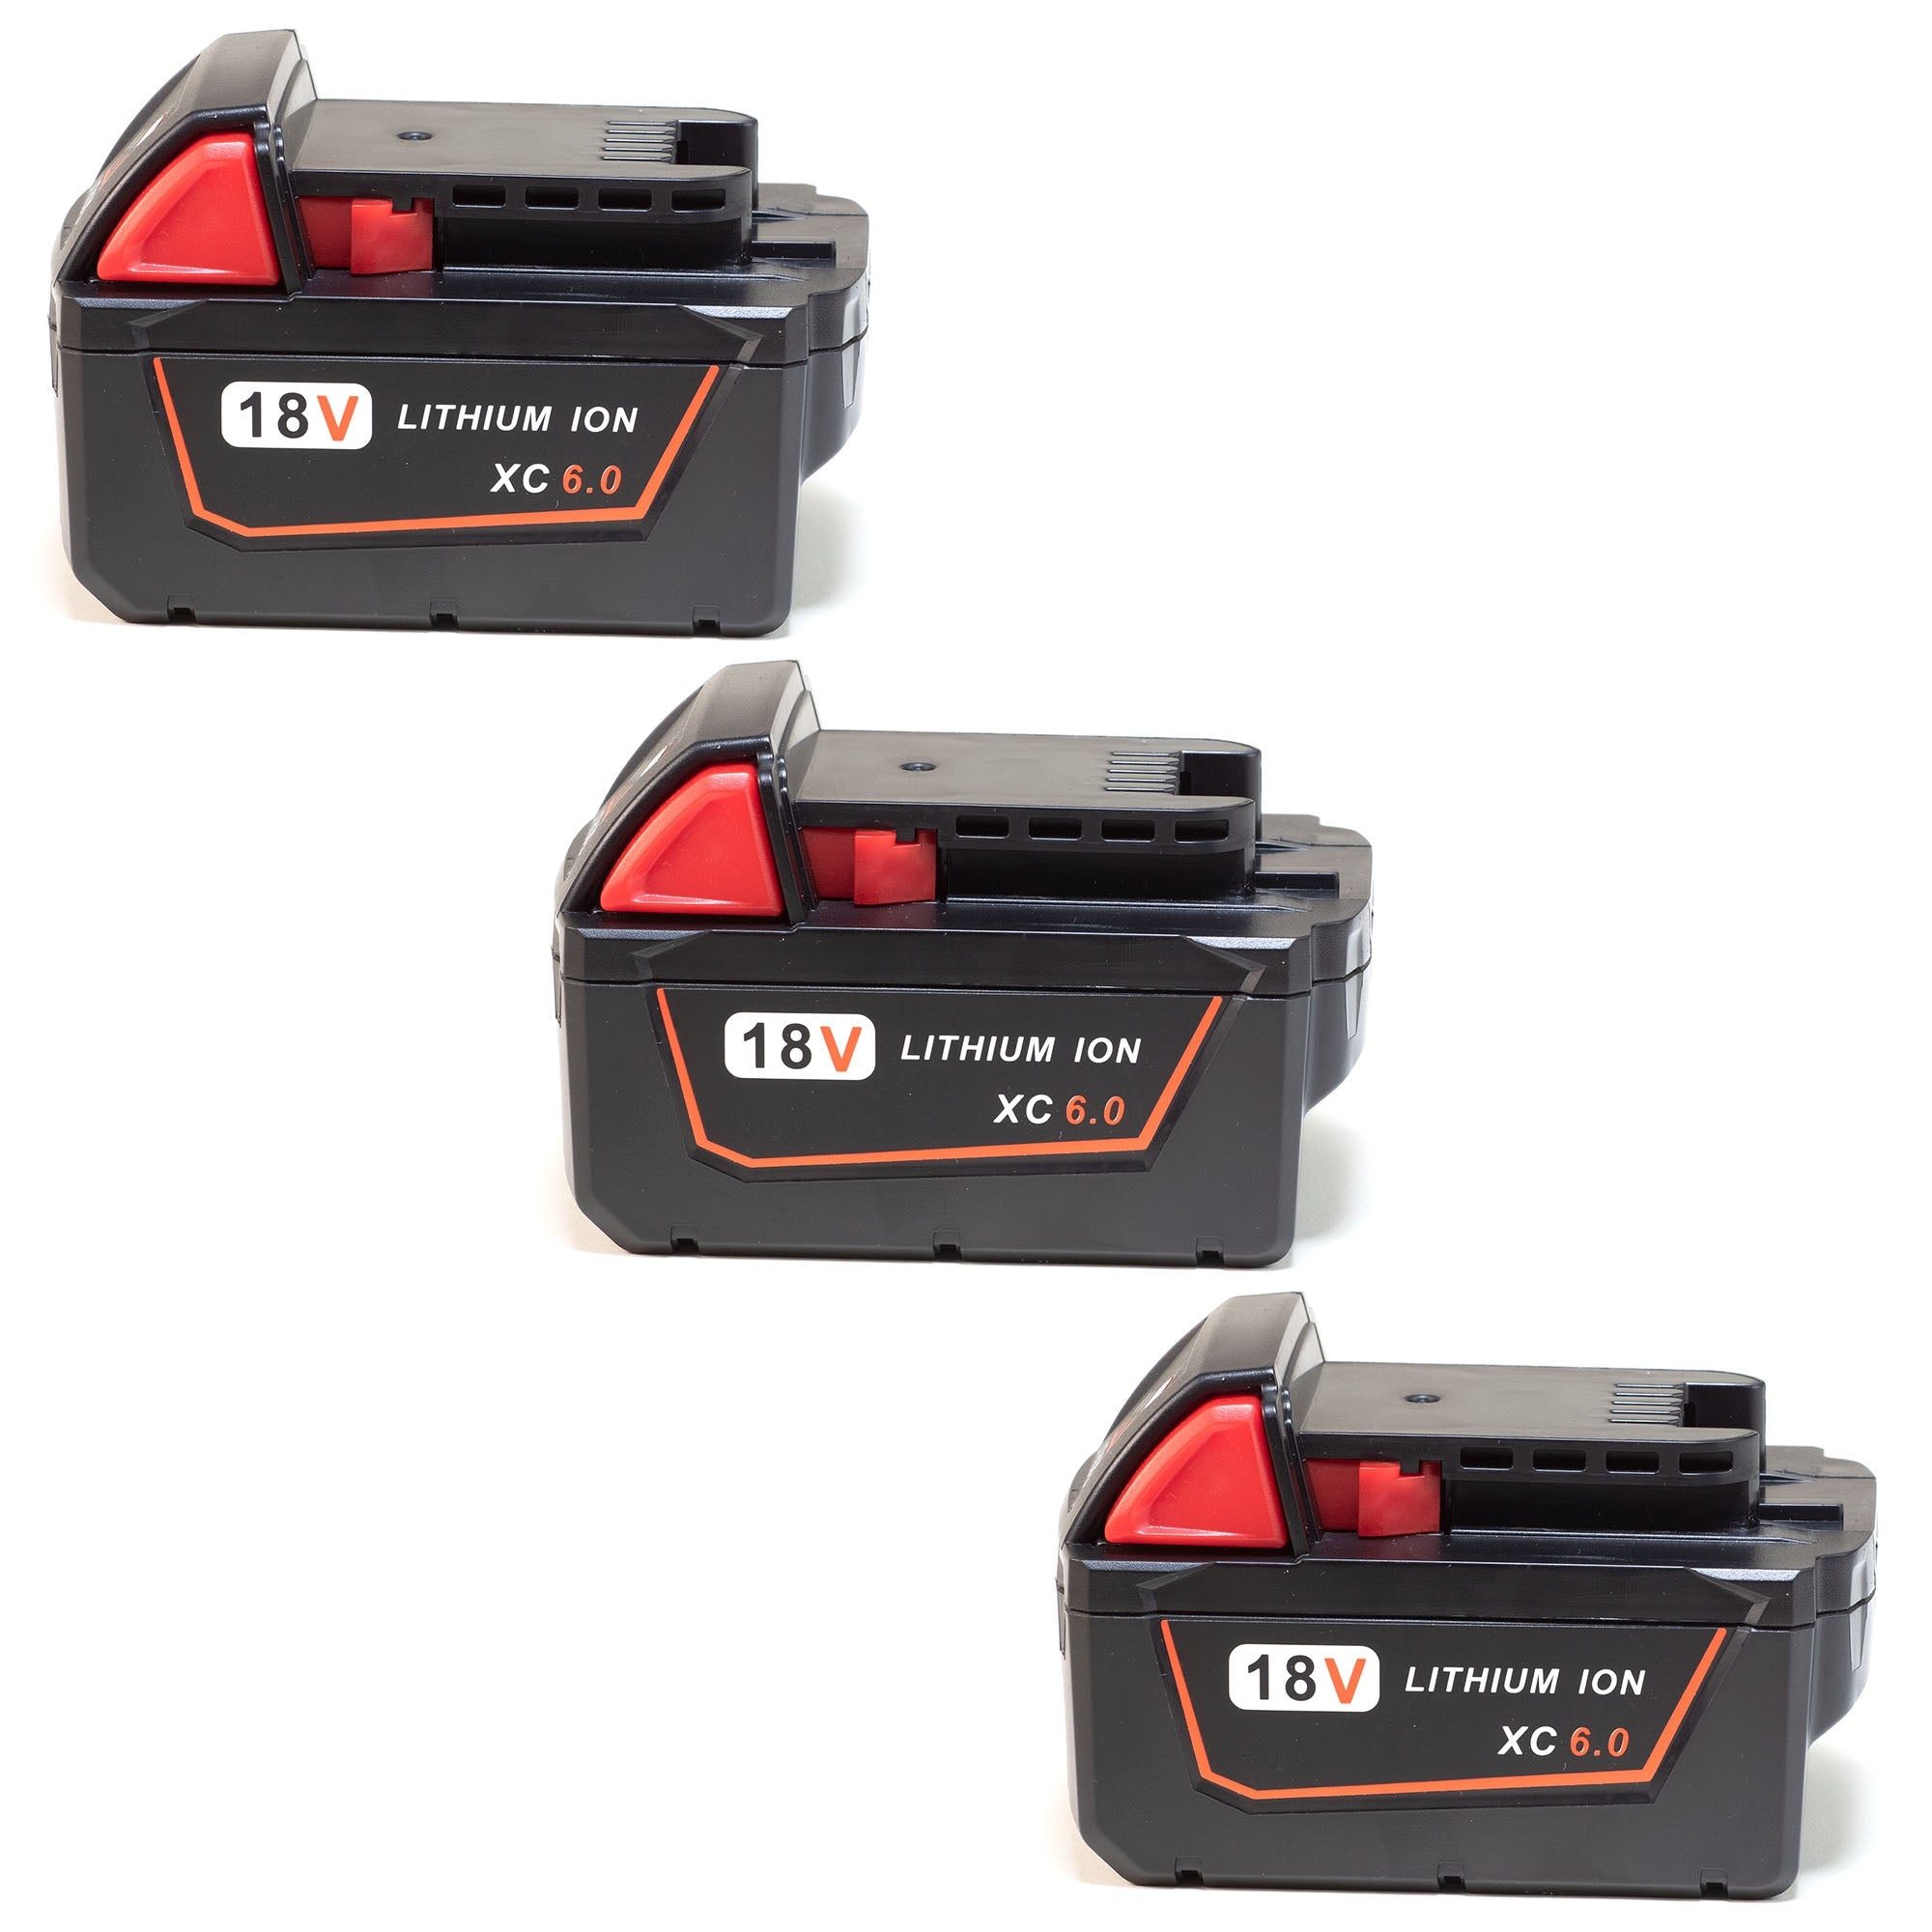 Replacement 6000mAh Battery for Milwaukee 2703-22 / 2731-21 / 2781-20 Power Tools (3 Pk)